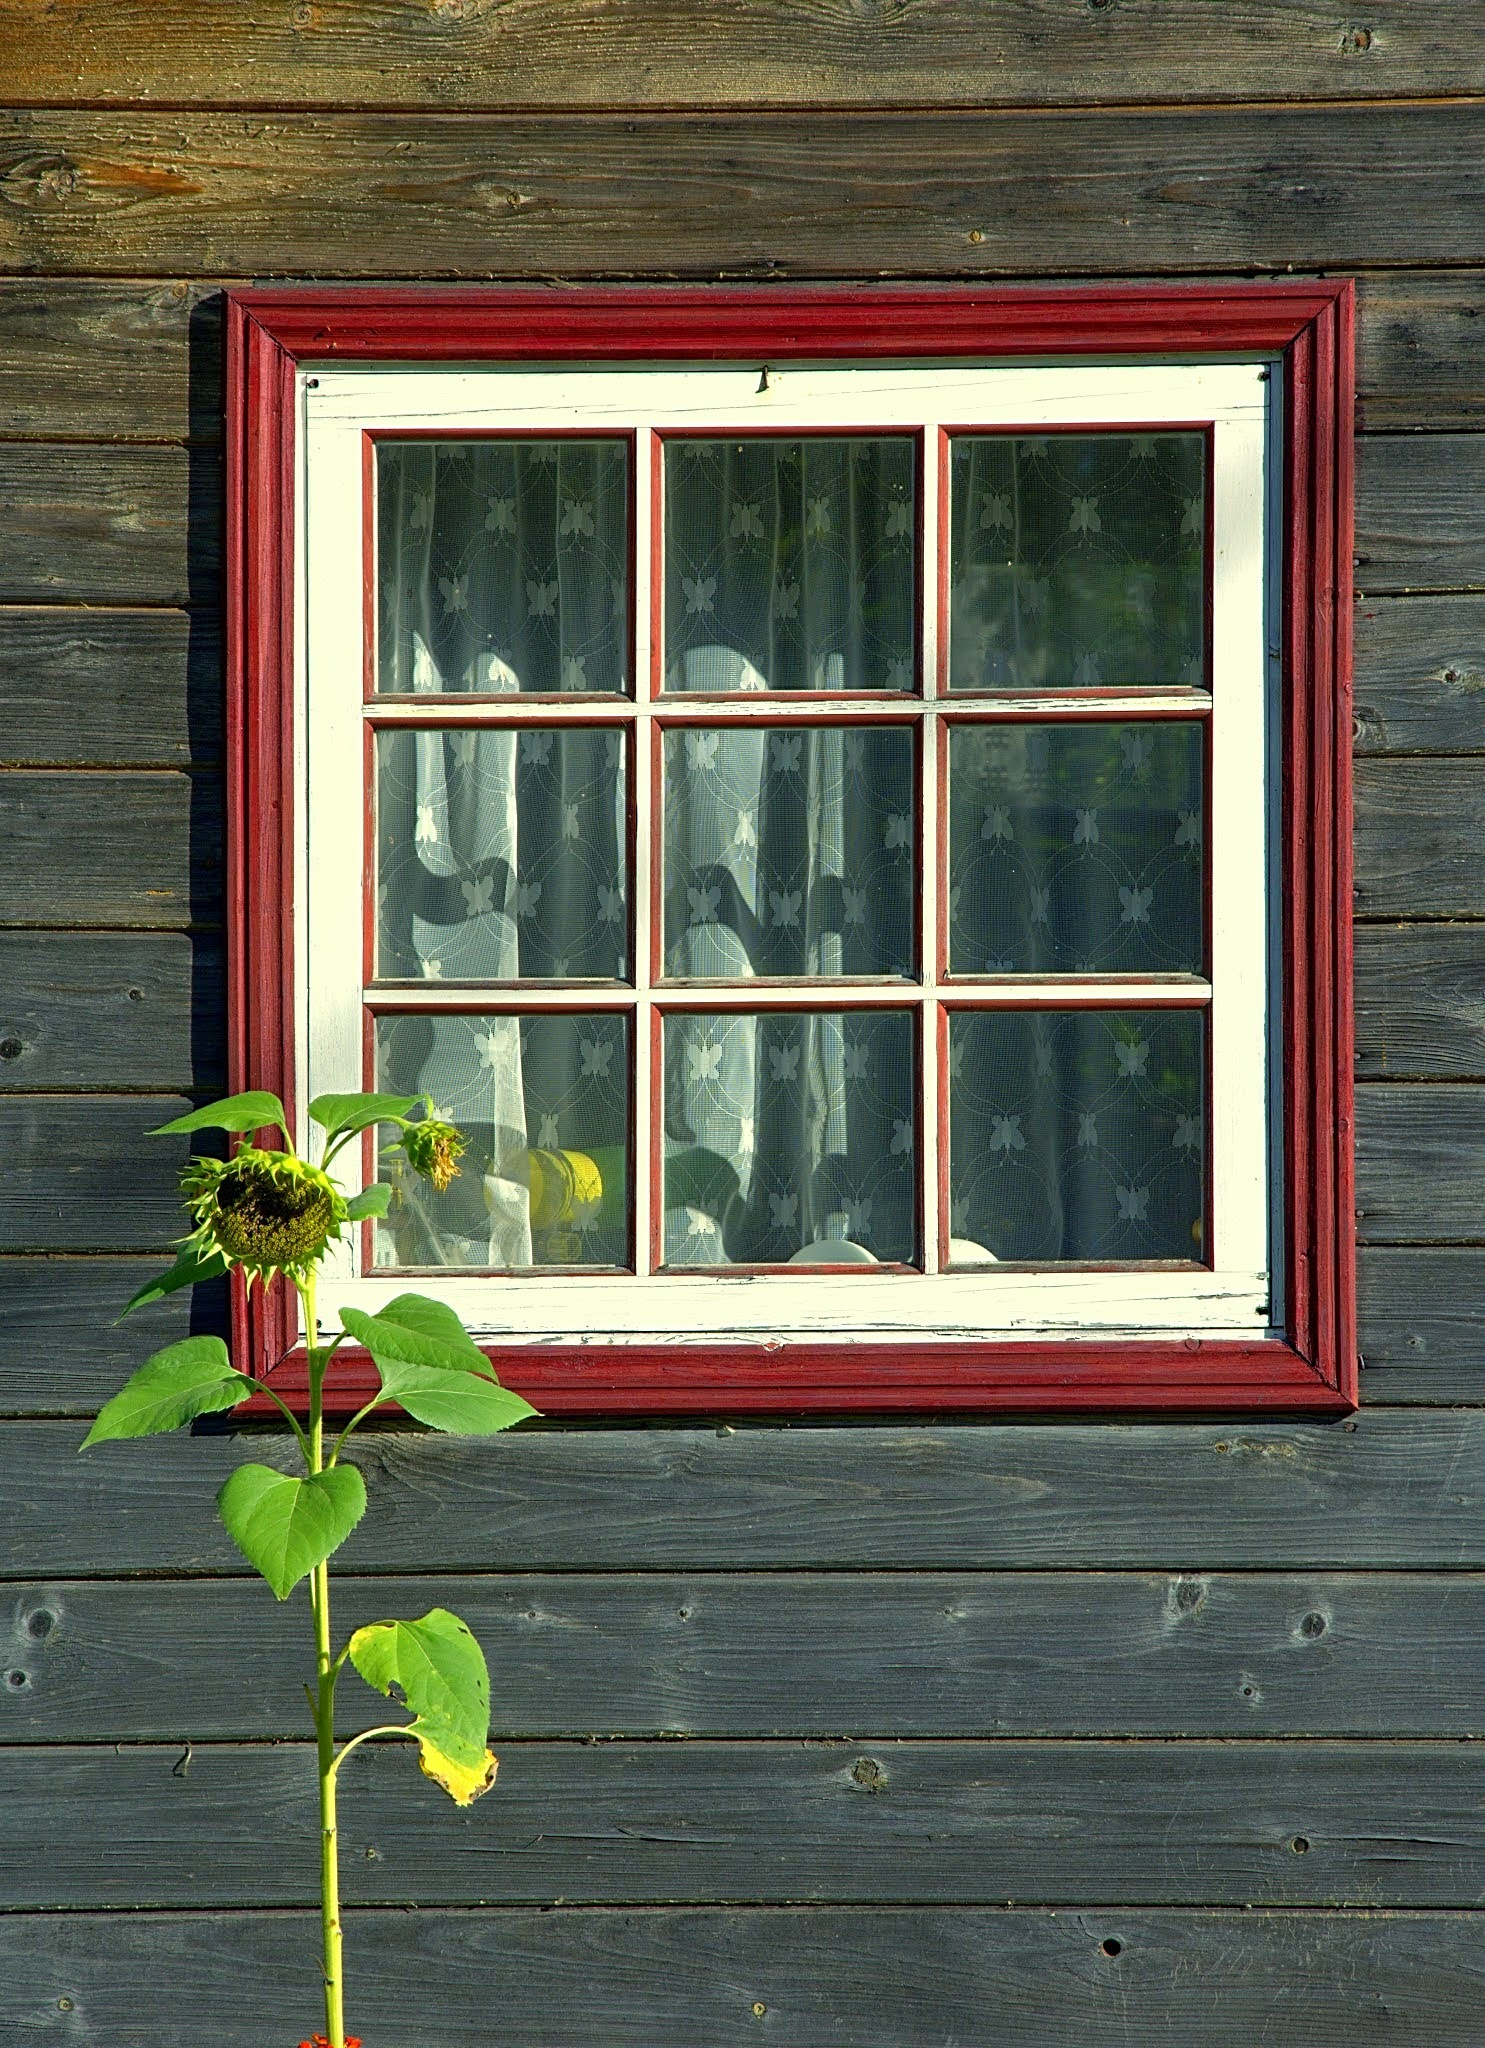 window  ... by andris96